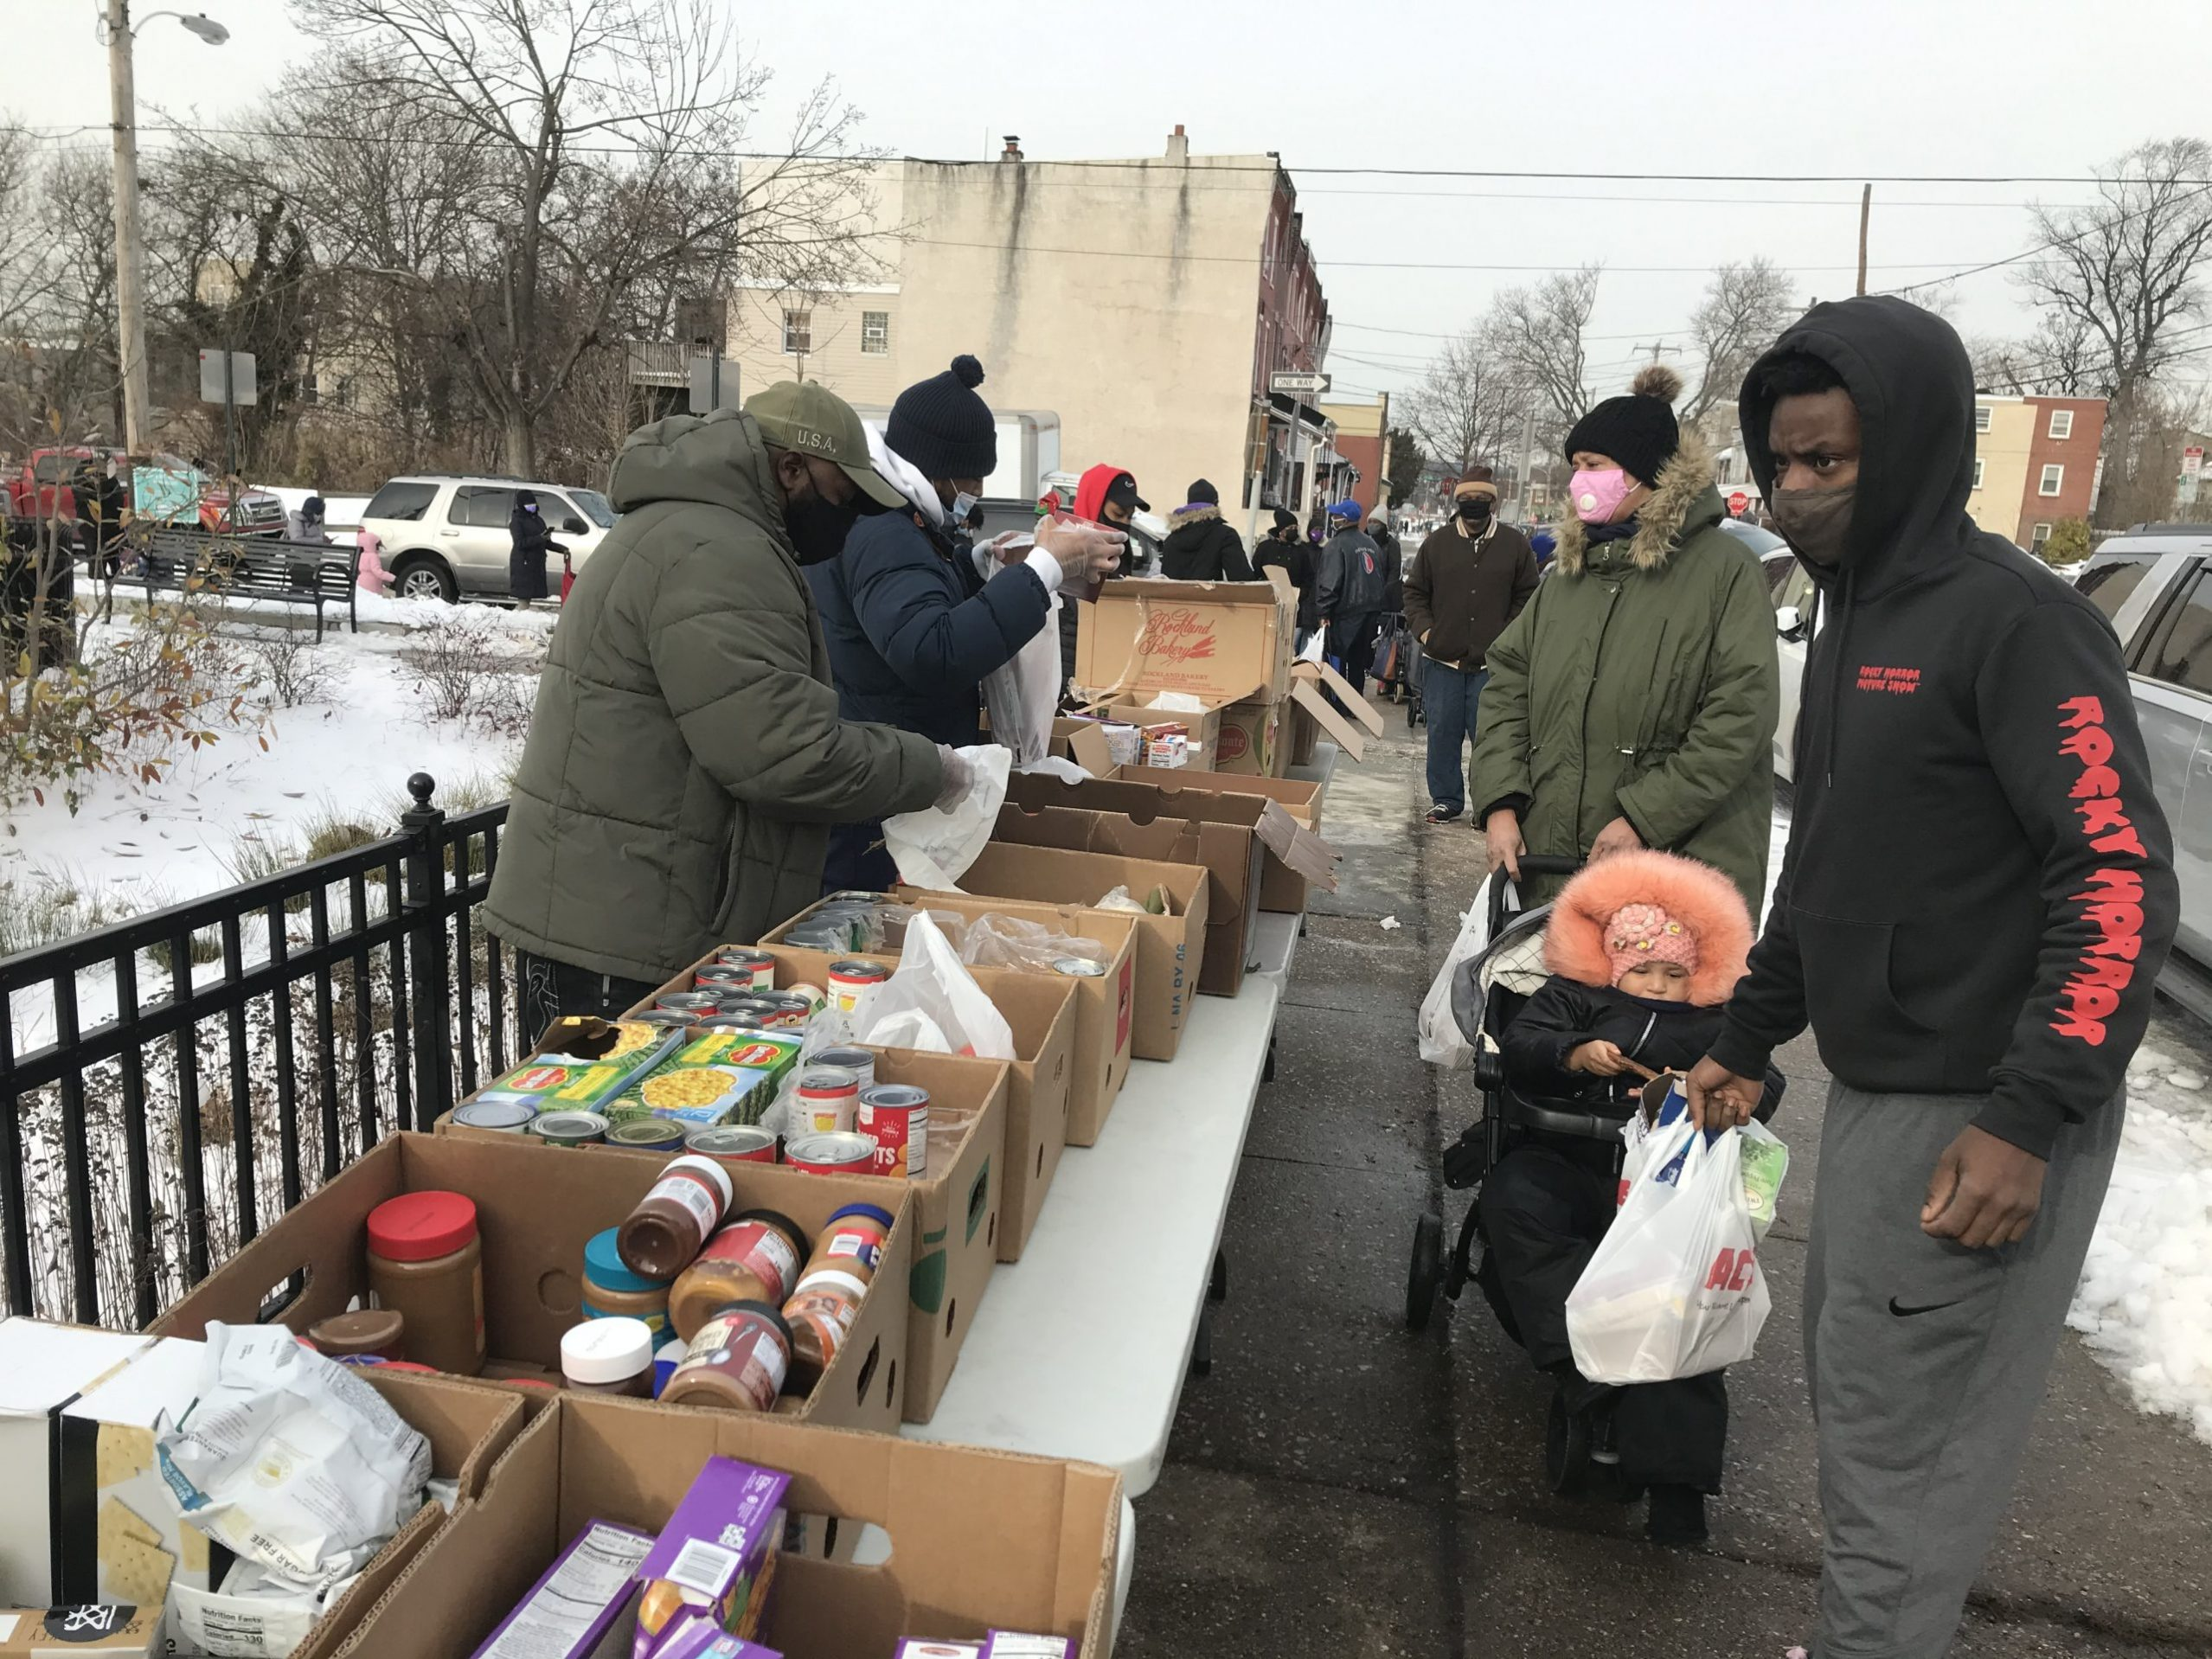 People stand in line to get food distributions on the street in Philadelphia.